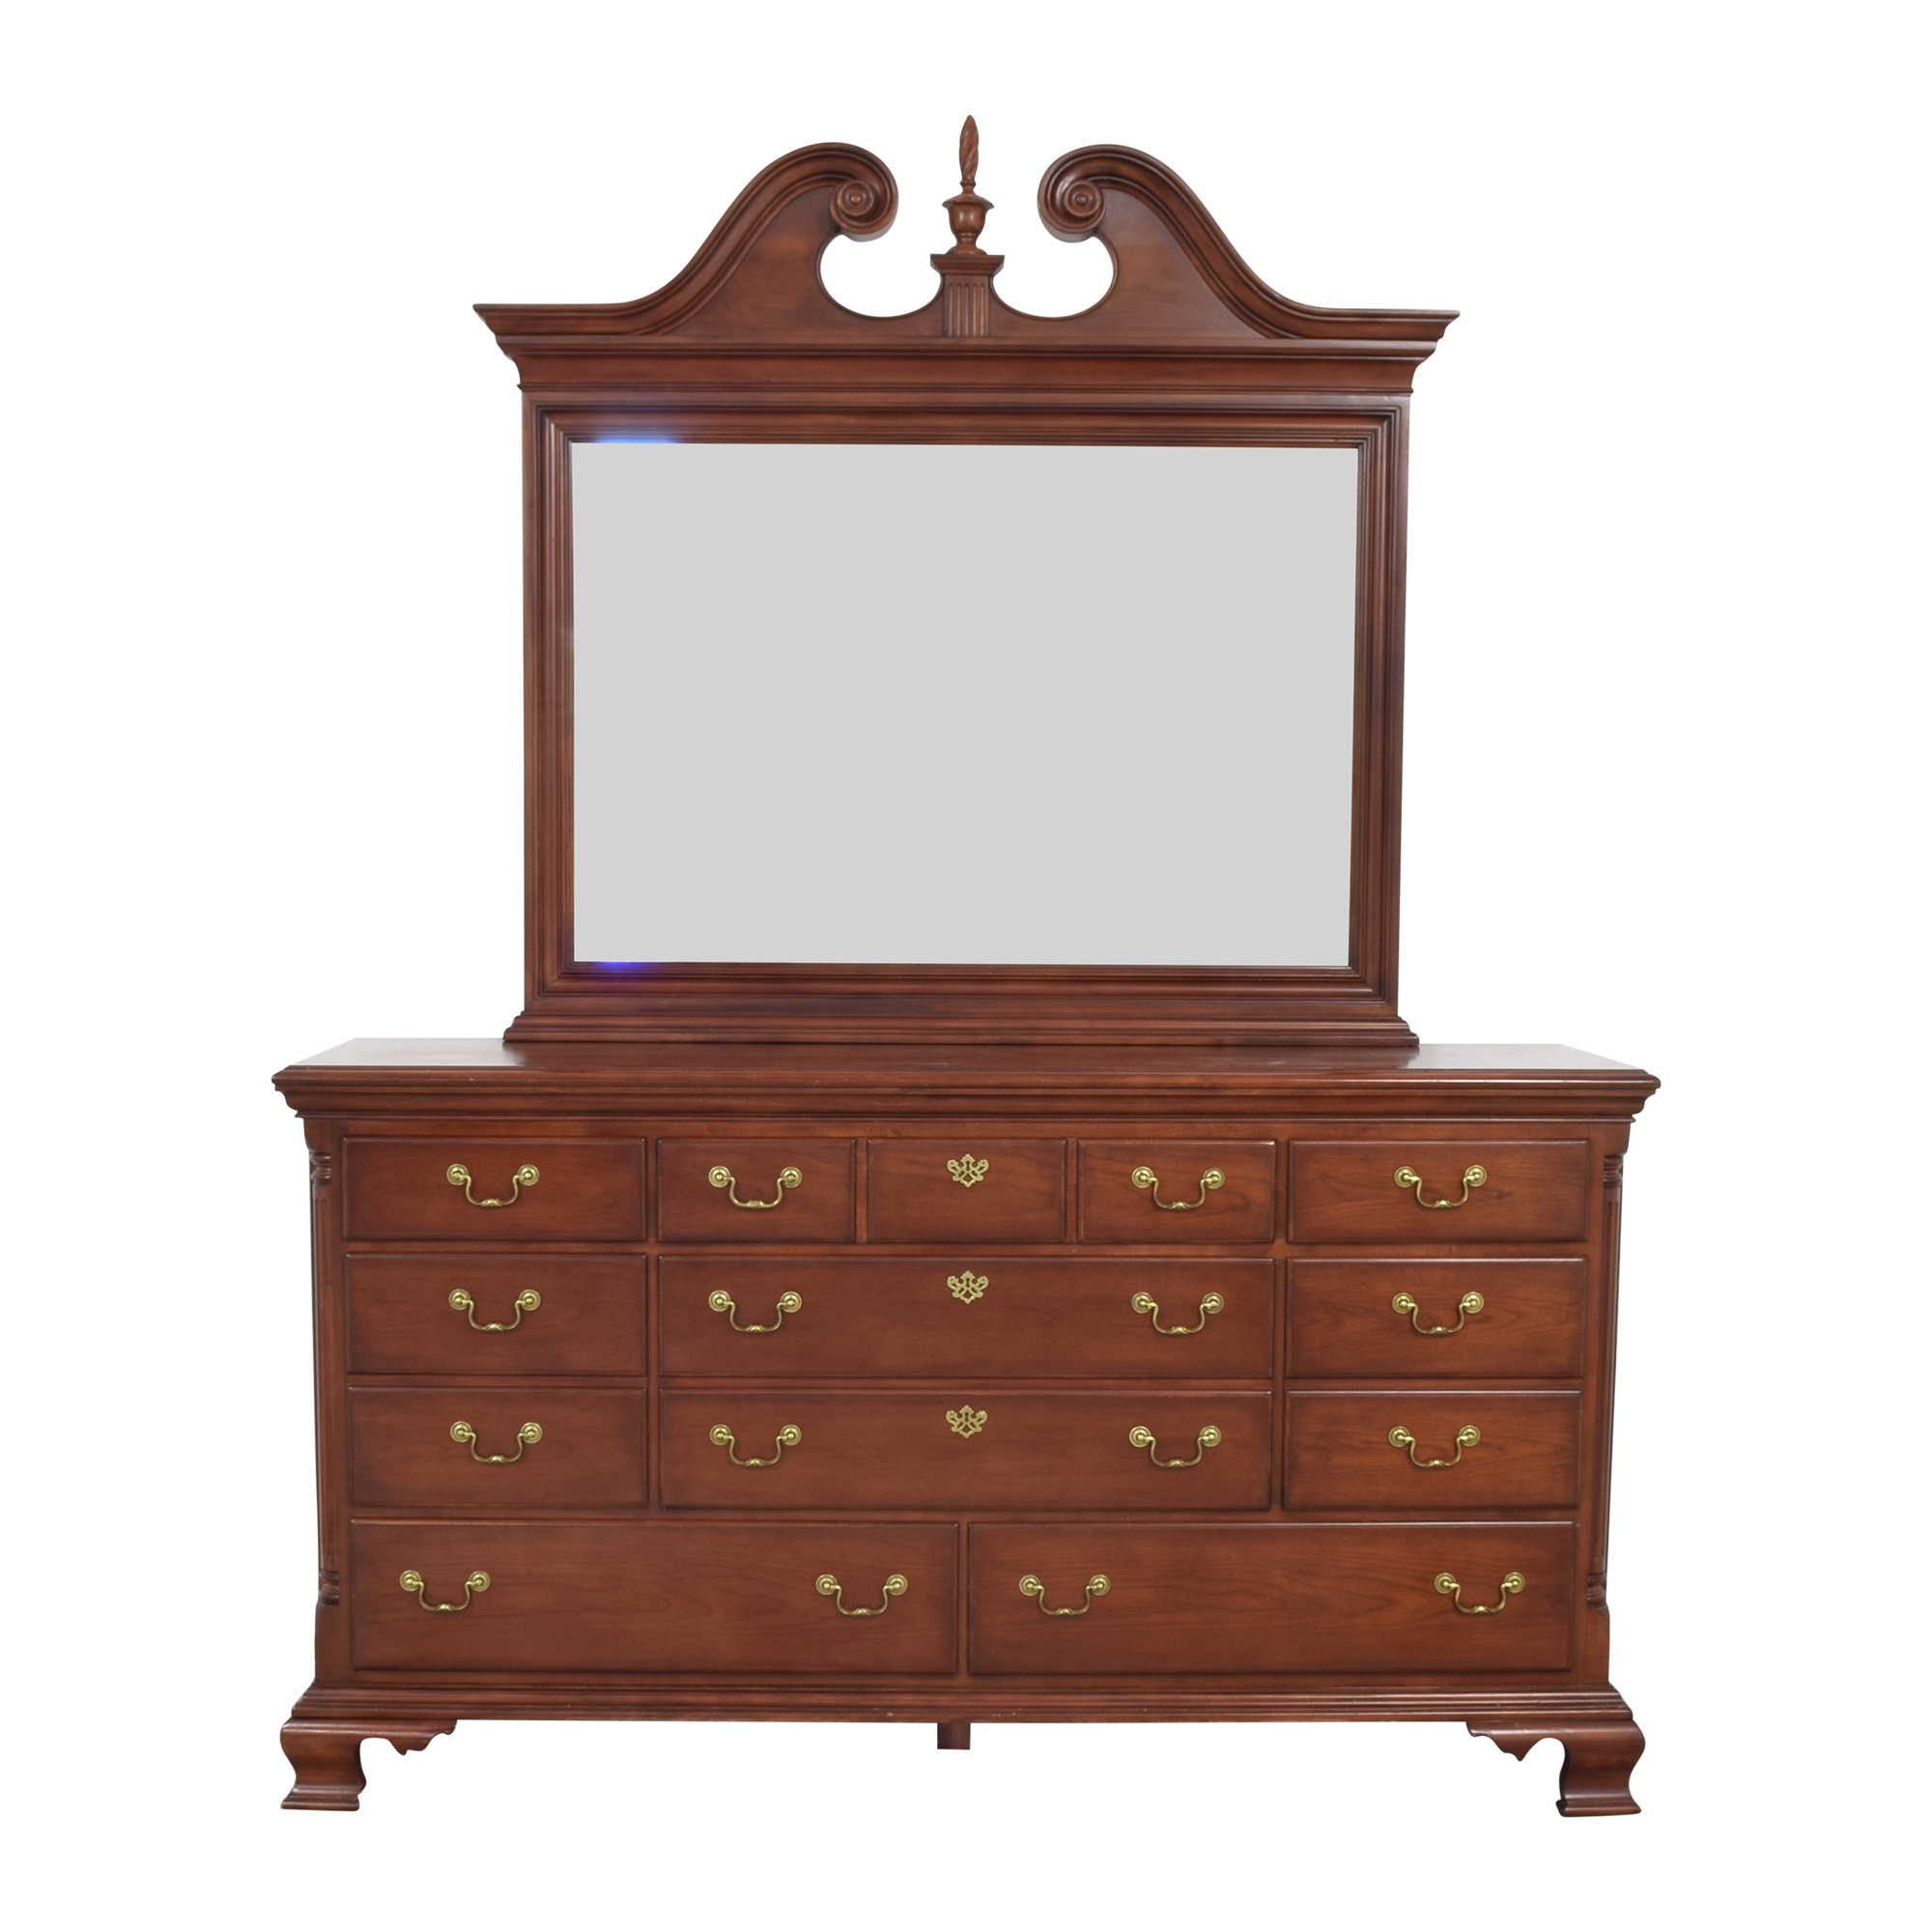 Thomasville Thomasville Eight Drawer Dresser with Mirror second hand